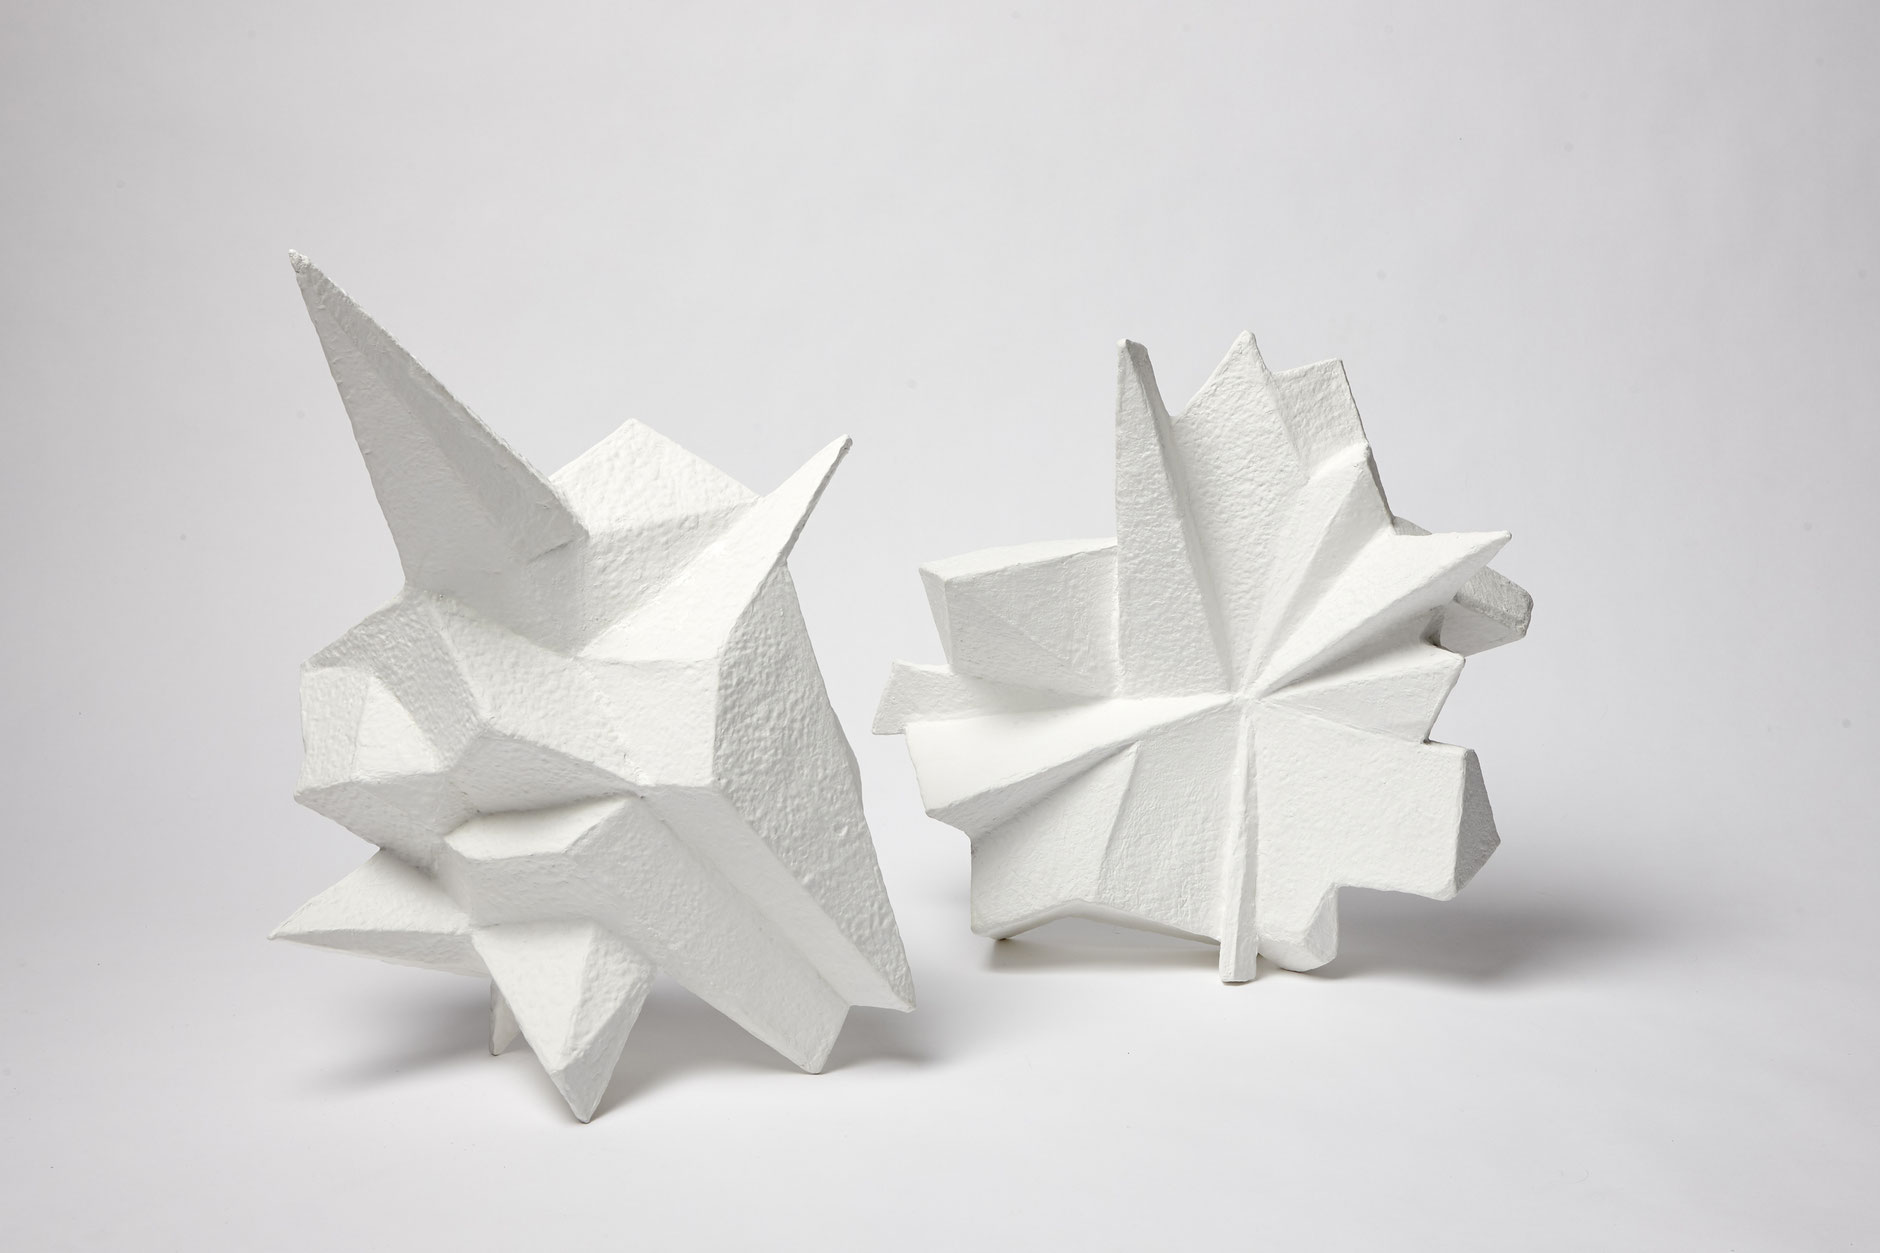 Geometric sculptures - made from multiple layers of hand-made paper, inspired by frozen, wind-swept water.height: 60cm width: 40cm depth: 20cm (approximately)